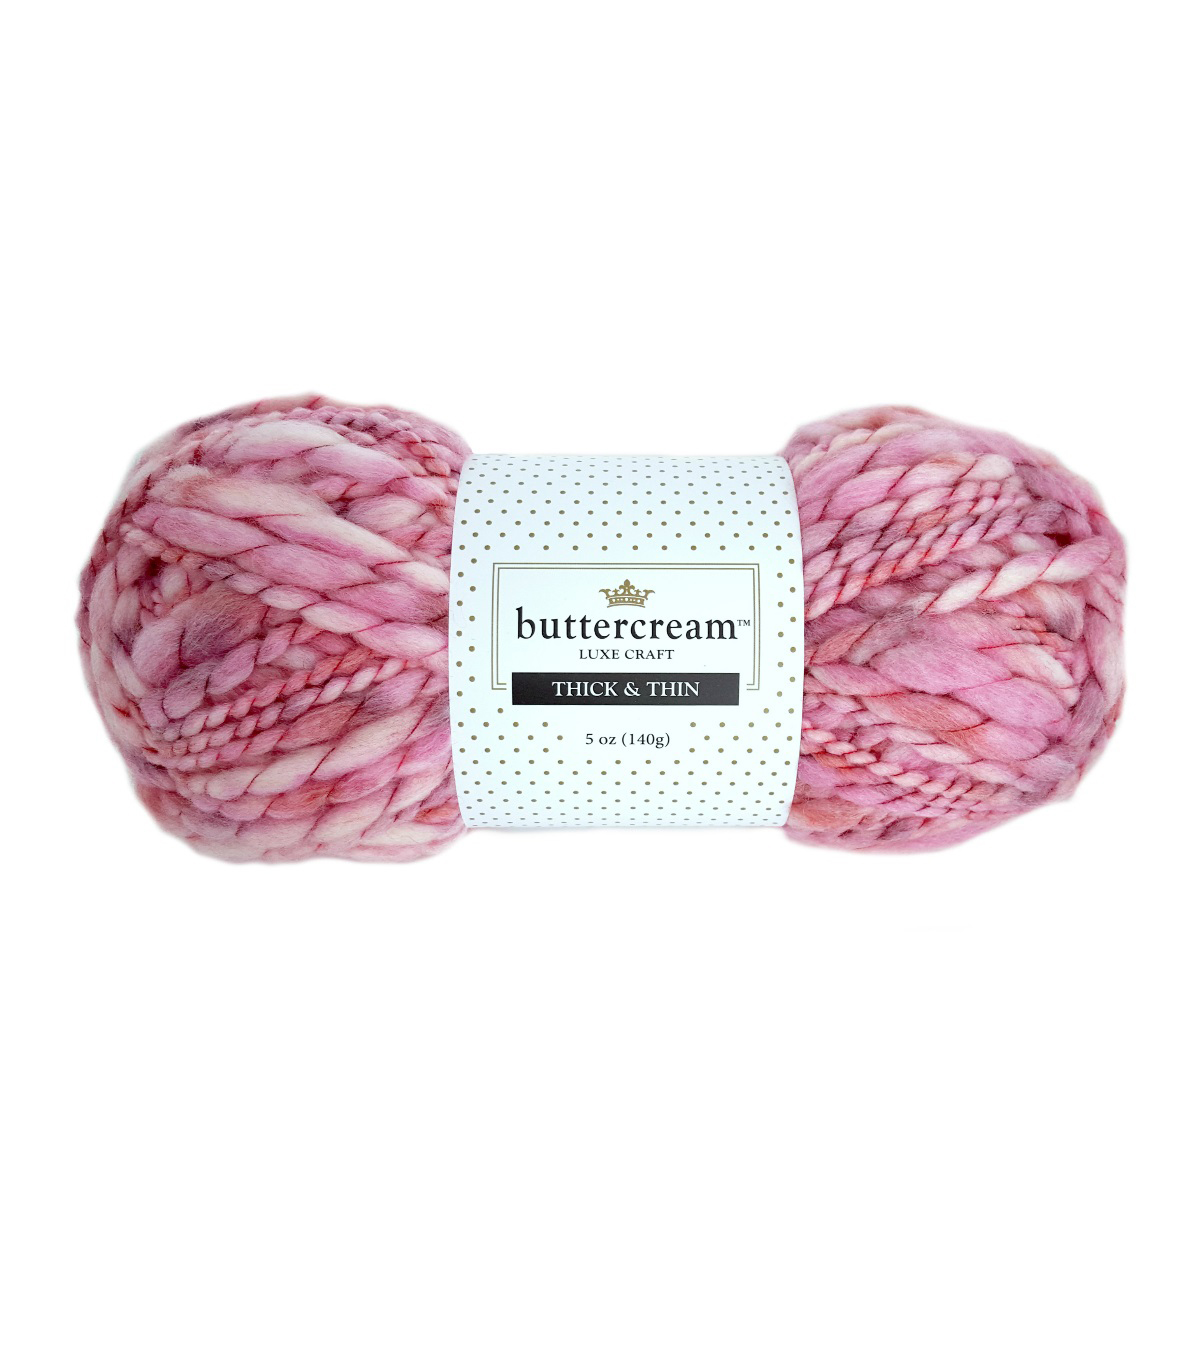 Buttercream Thick & Thin Yarn | JOANN